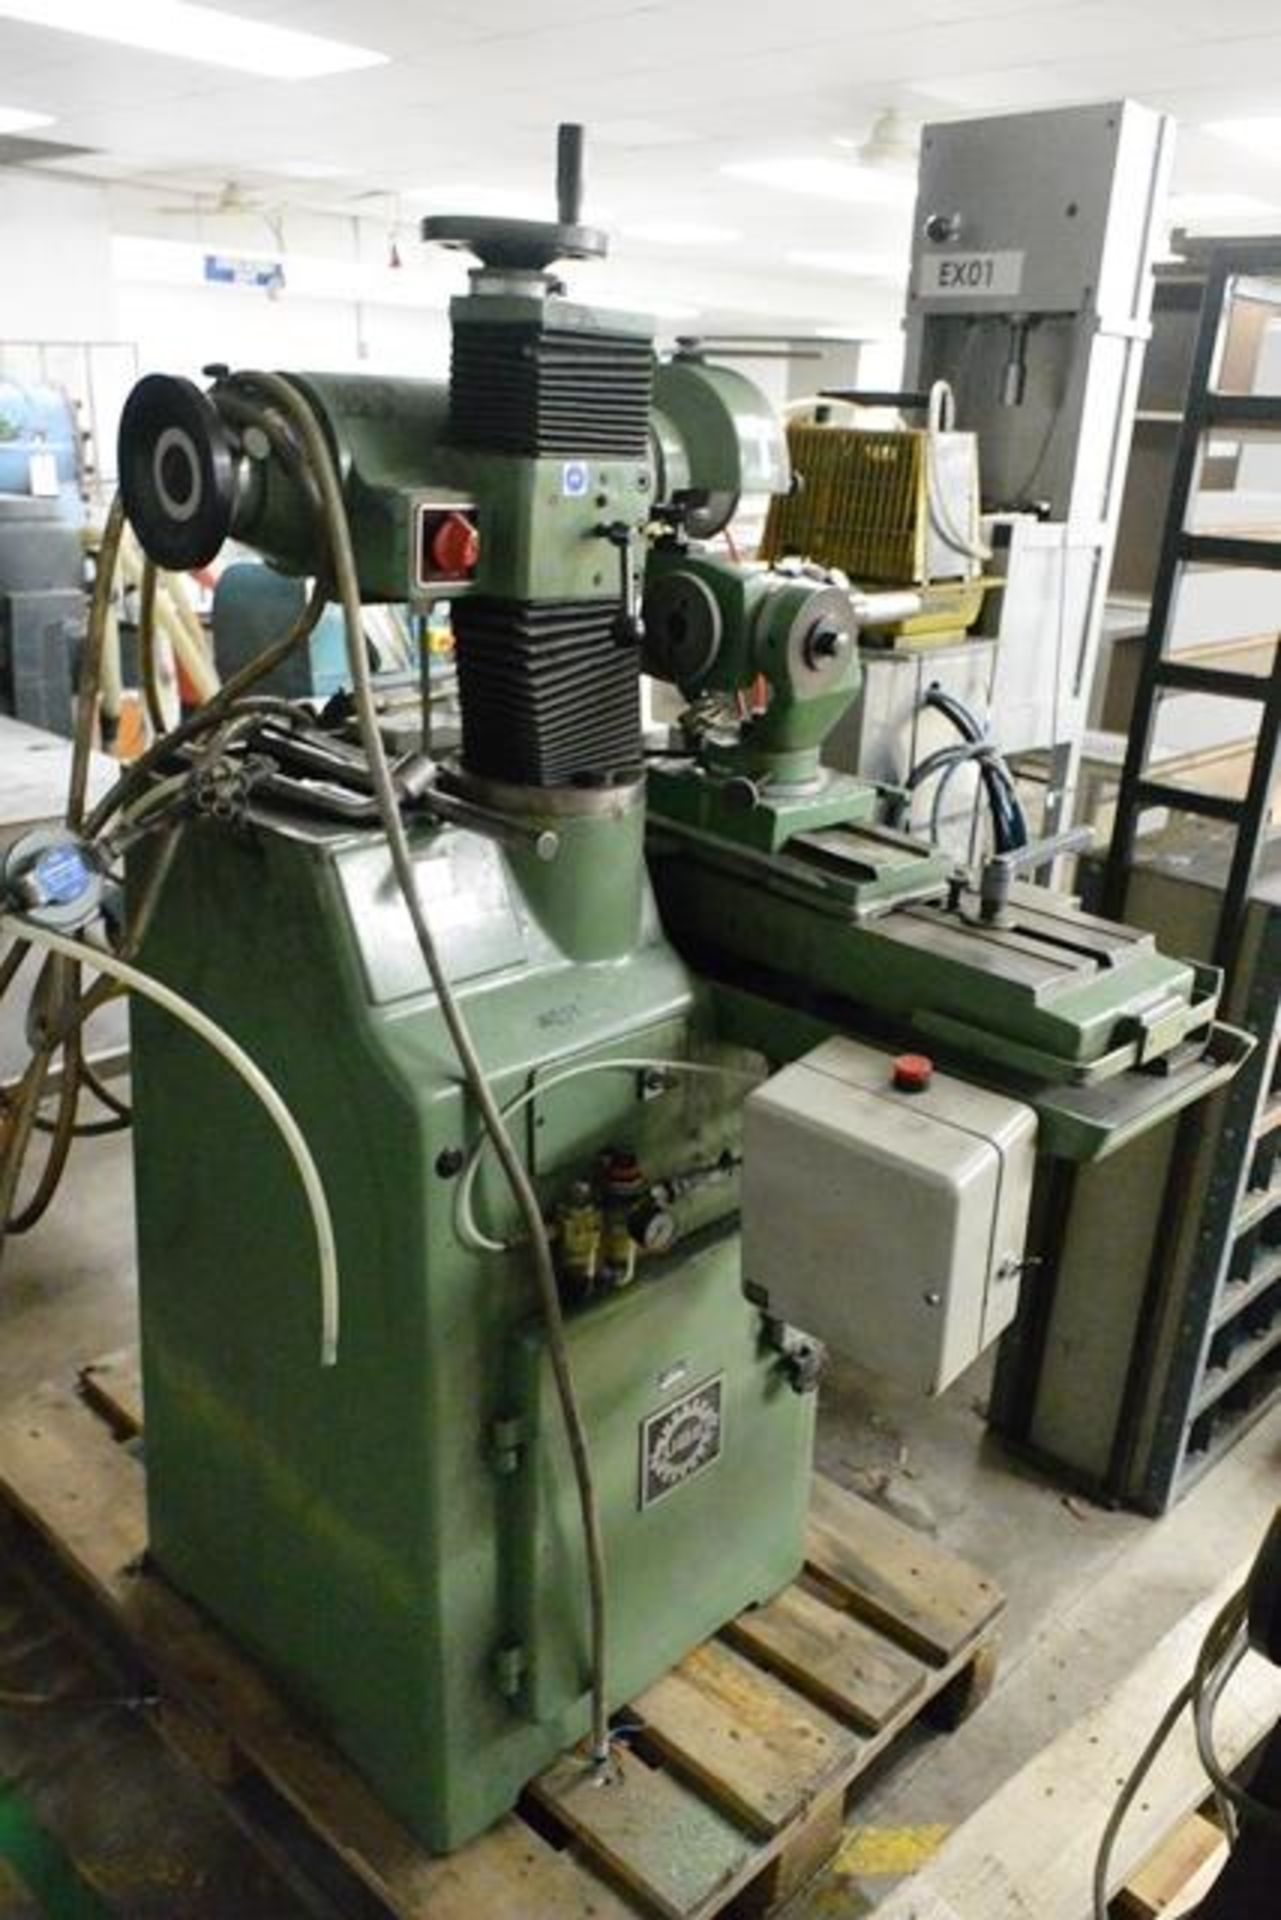 Zuber horizontal surface grinder, machine no. 06013, approx table dimension 900 x 270mm - Image 5 of 7